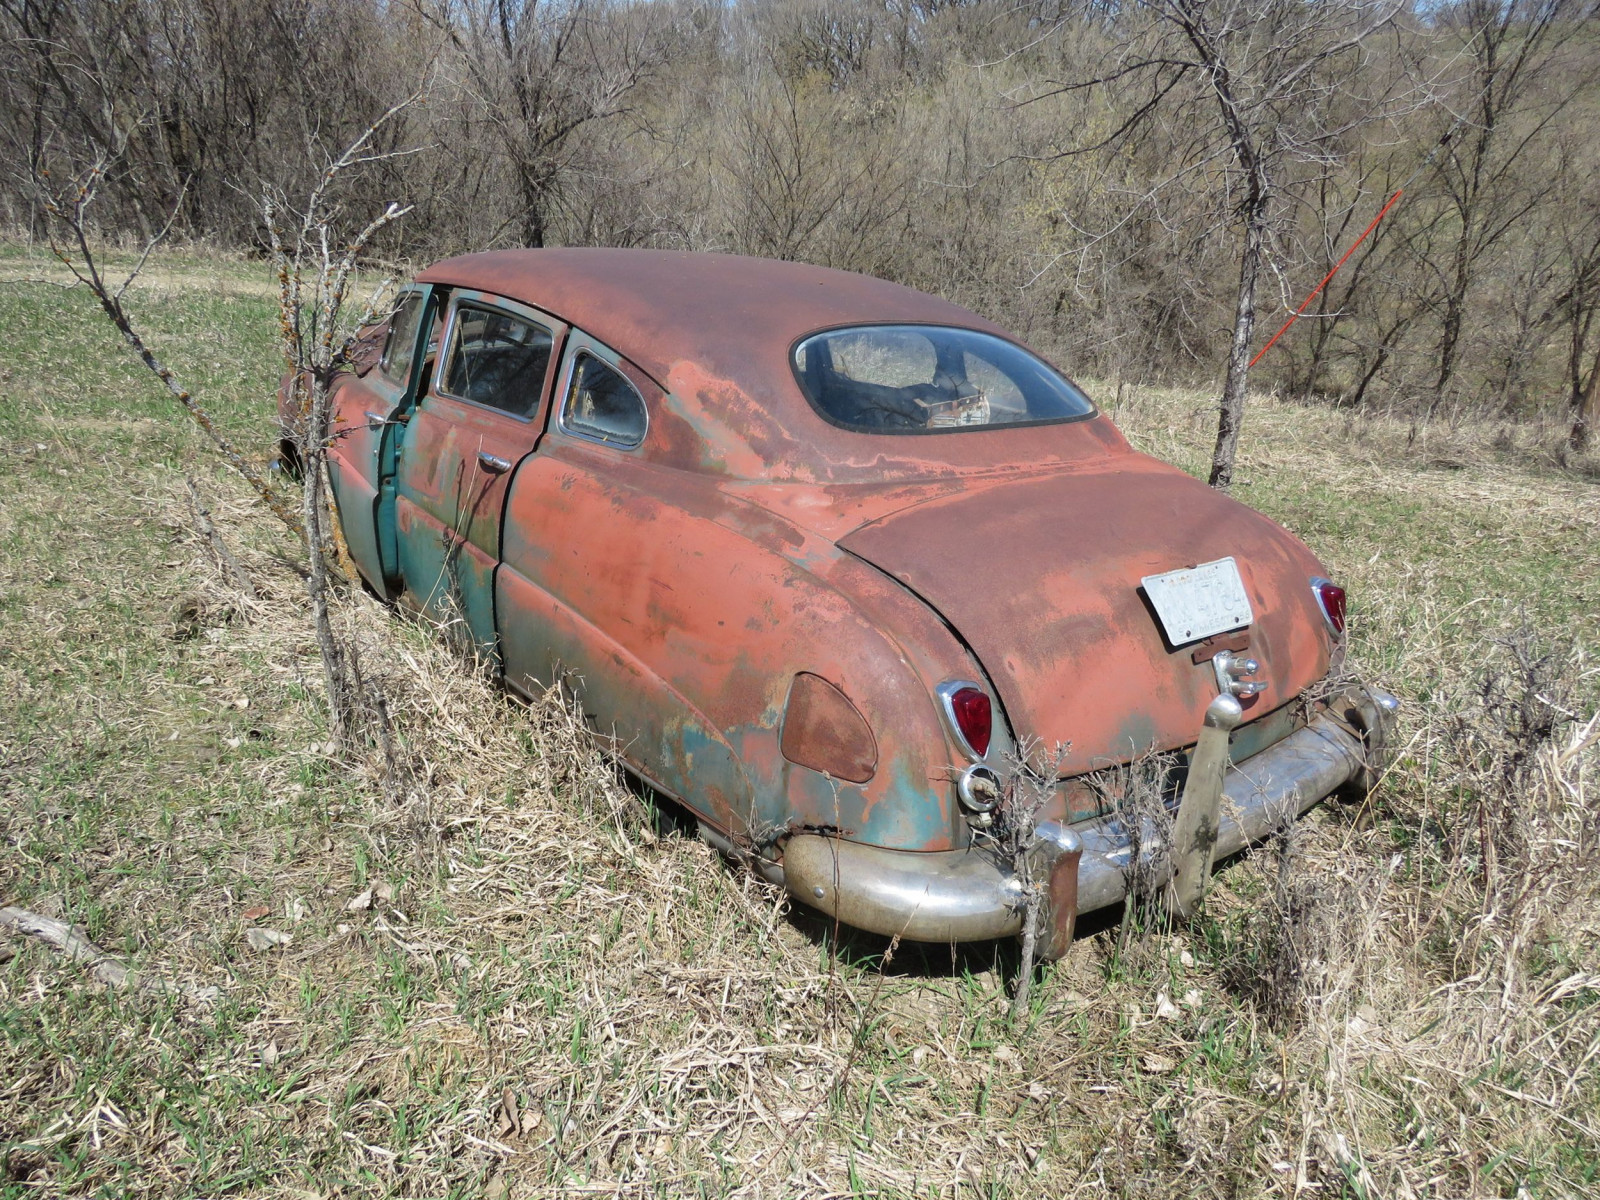 1949/50 Hudson 4dr Sedan for Project or Parts - Image 3